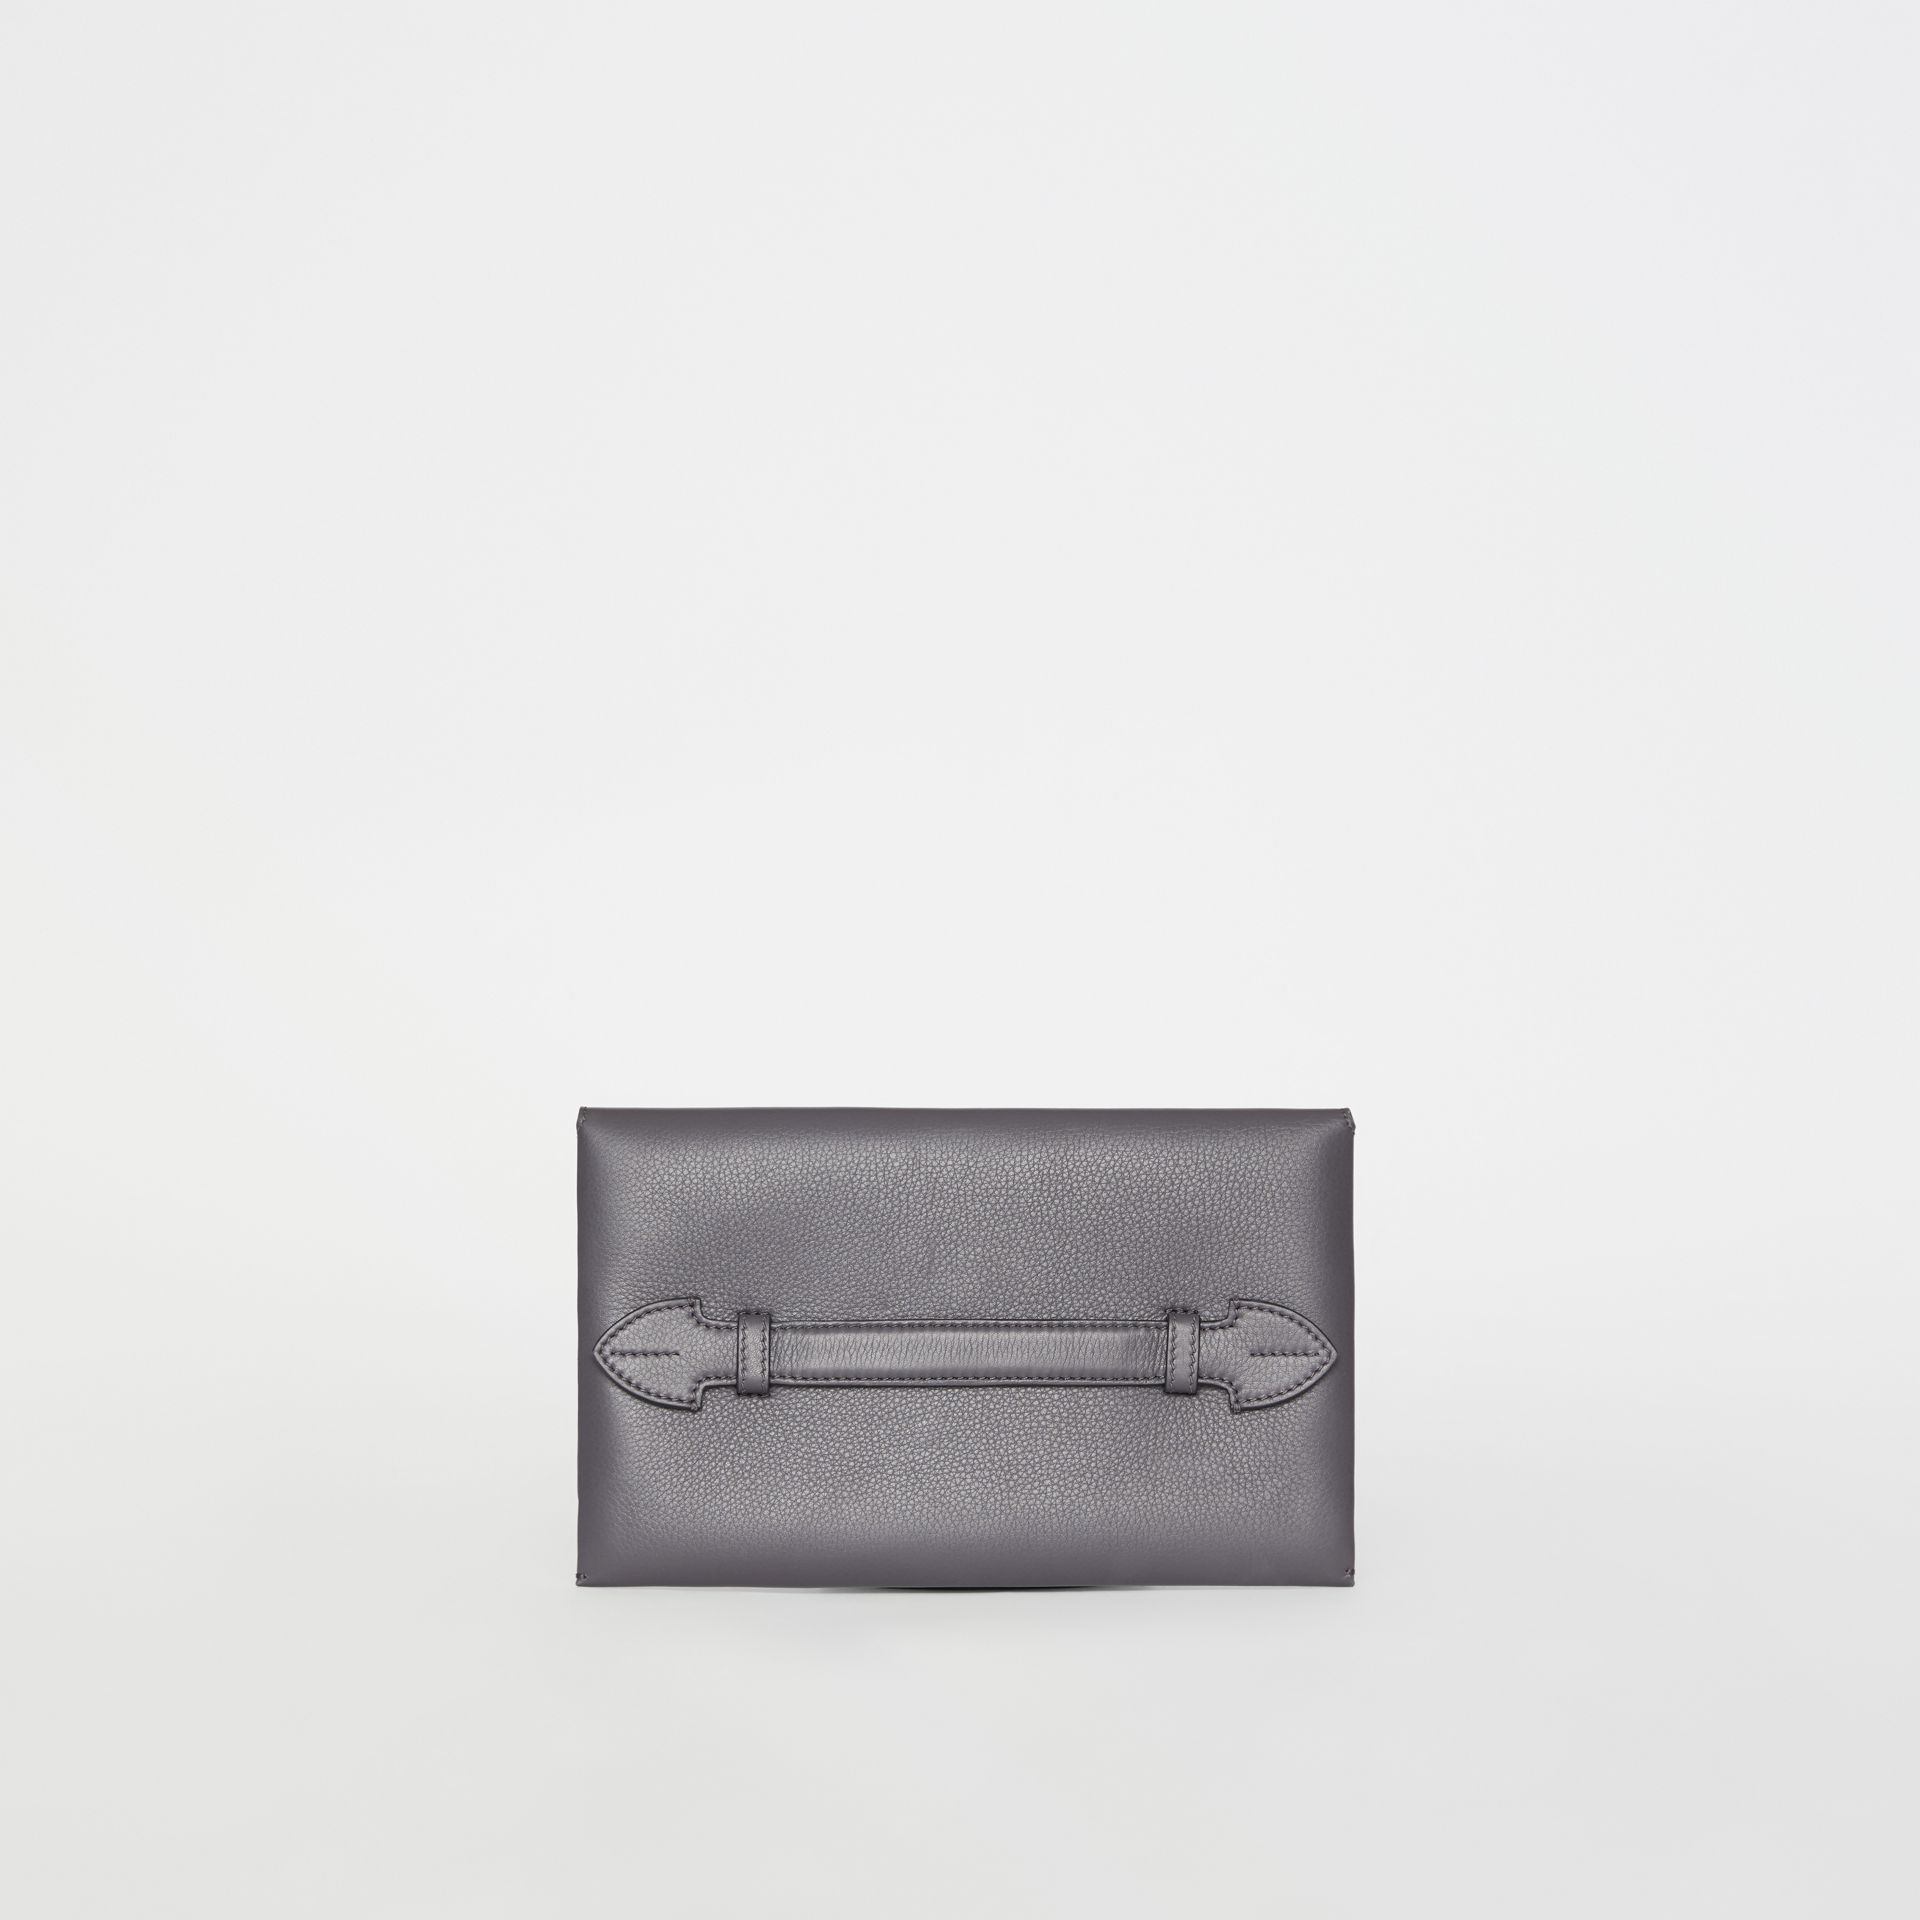 Two-tone Leather Wristlet Clutch in Charcoal Grey - Women | Burberry - gallery image 4